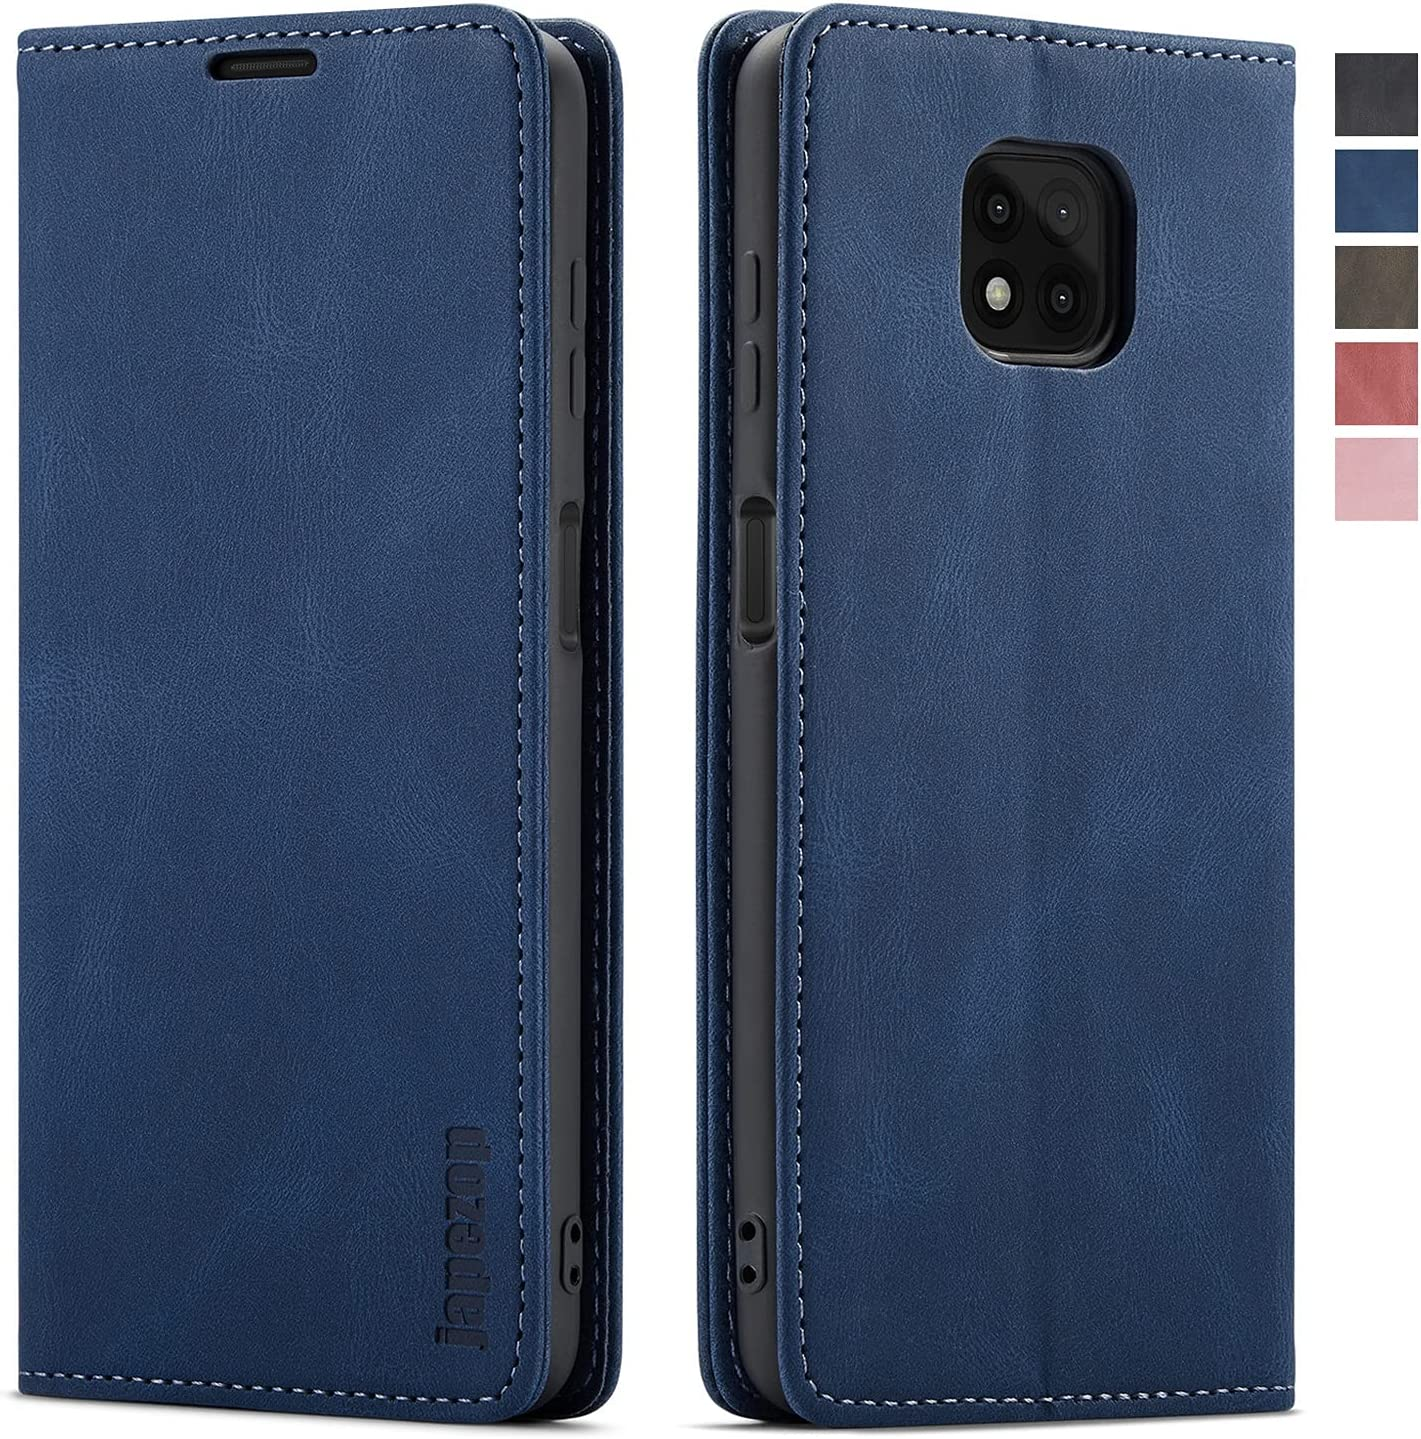 japezop for Moto G Power 2021 Case,Moto G Power 2021 Wallet Case with [RFID Blocking] Card Holder Kickstand Magnetic,Leather Flip Case for Moto G Power 2021 6.6 inch (Blue)